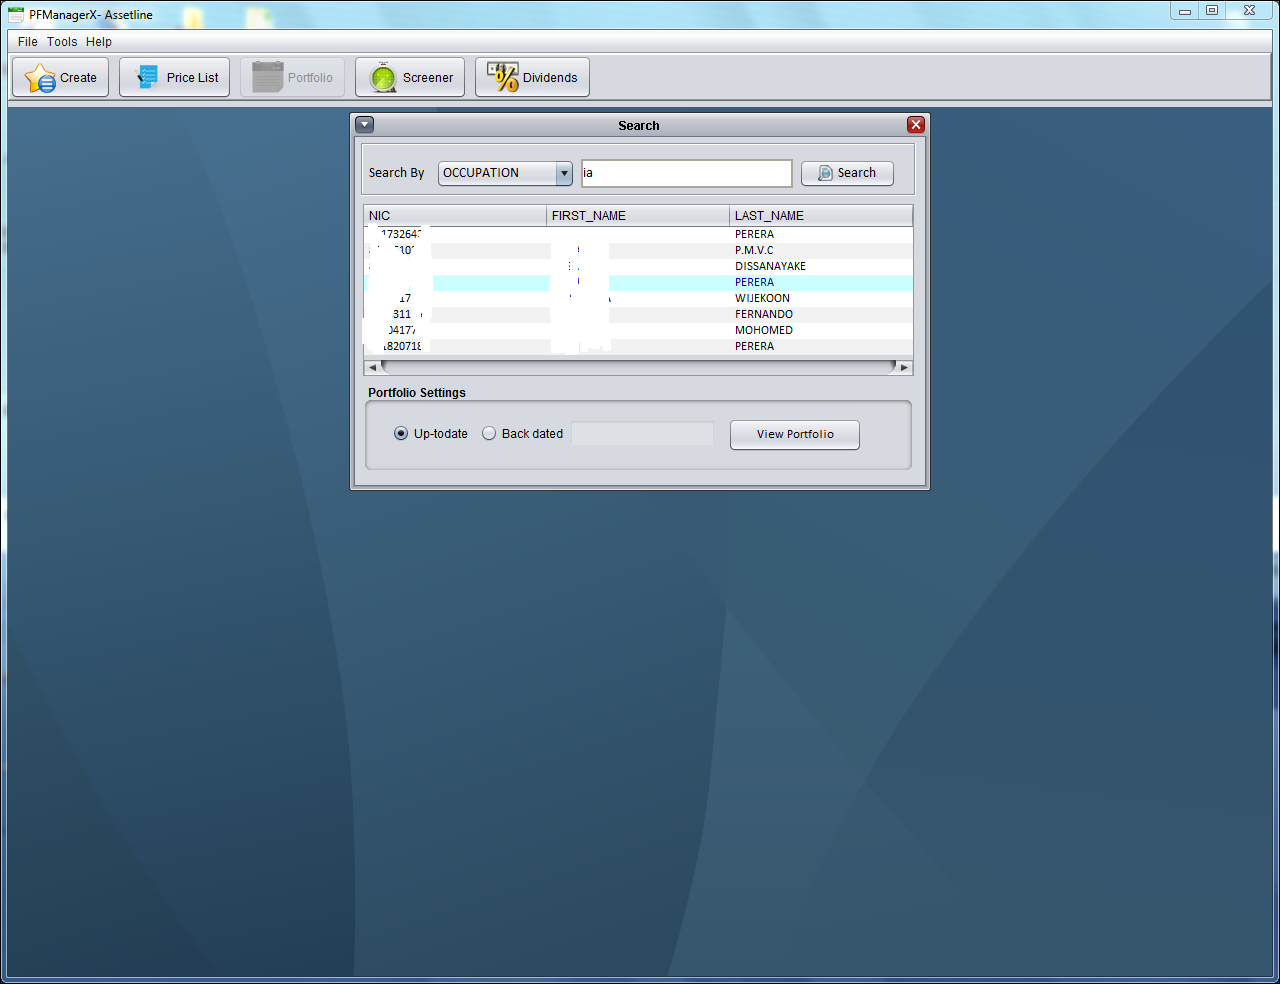 Download web tool or web app PFManagerX to run in Linux online